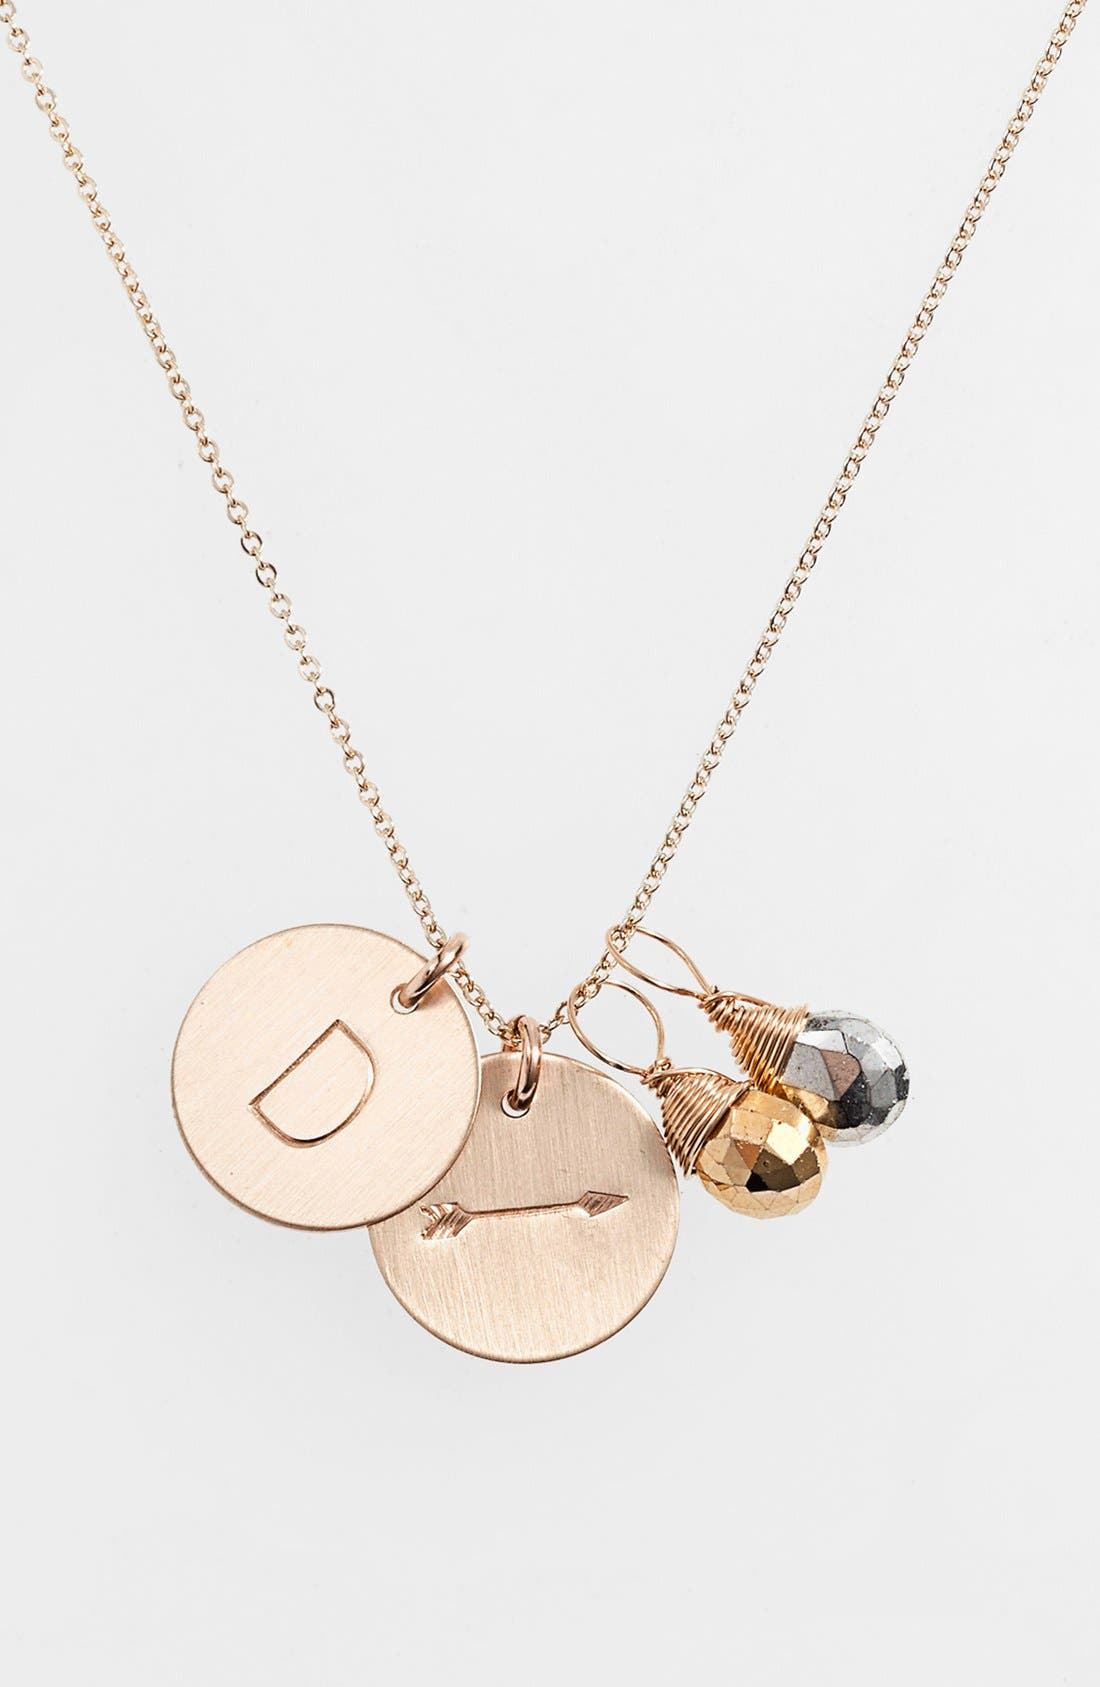 Pyrite Initial & Arrow 14k-Gold Fill Disc Necklace,                         Main,                         color, GOLD PYRITE/ SILVER PYRITE D